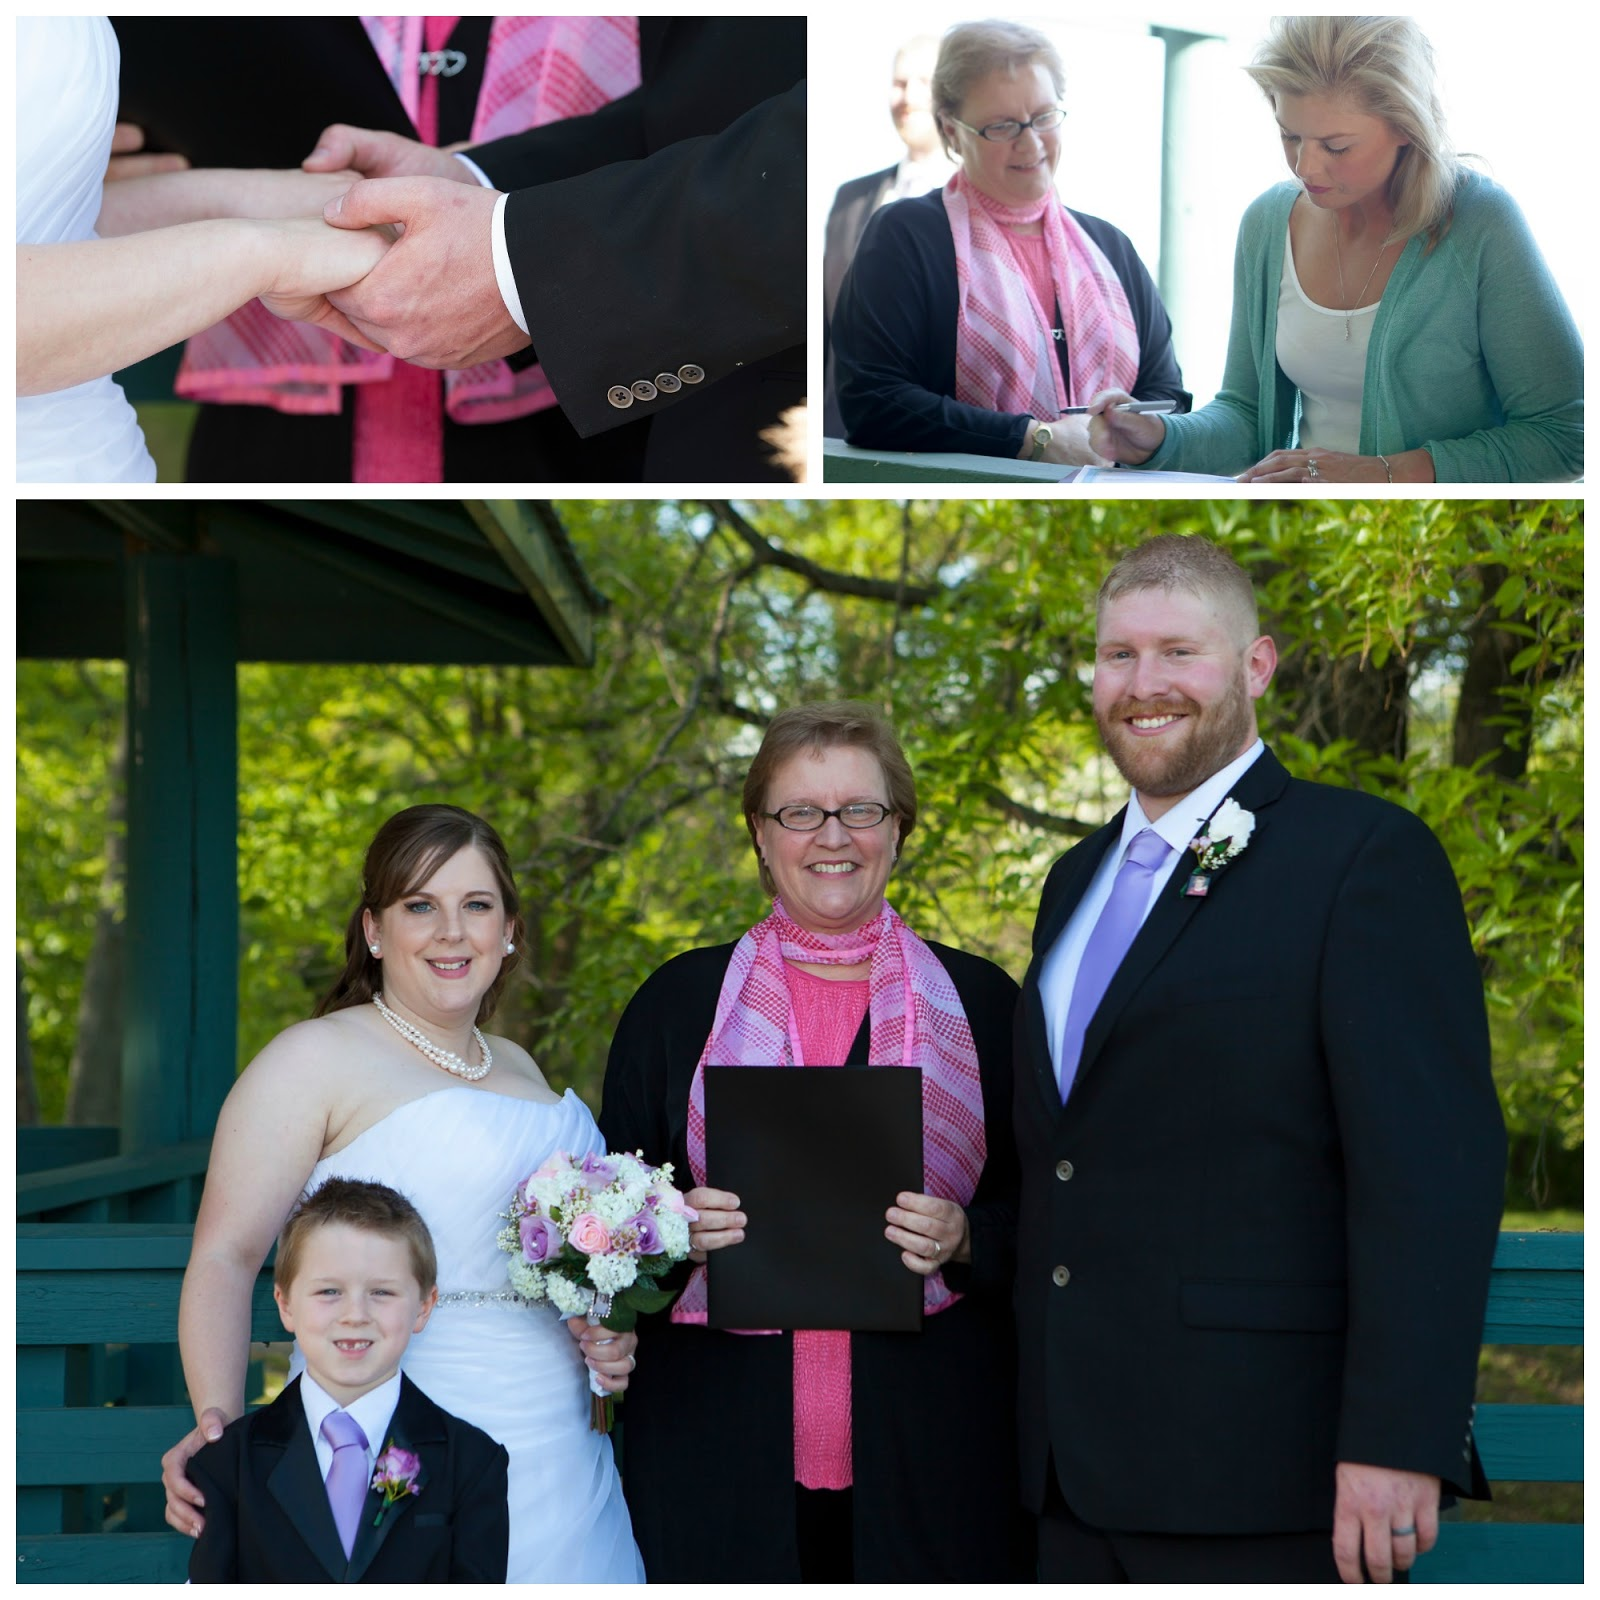 St Louis Wedding Liaison Blog: Bee Tree Park Overlook Wedding